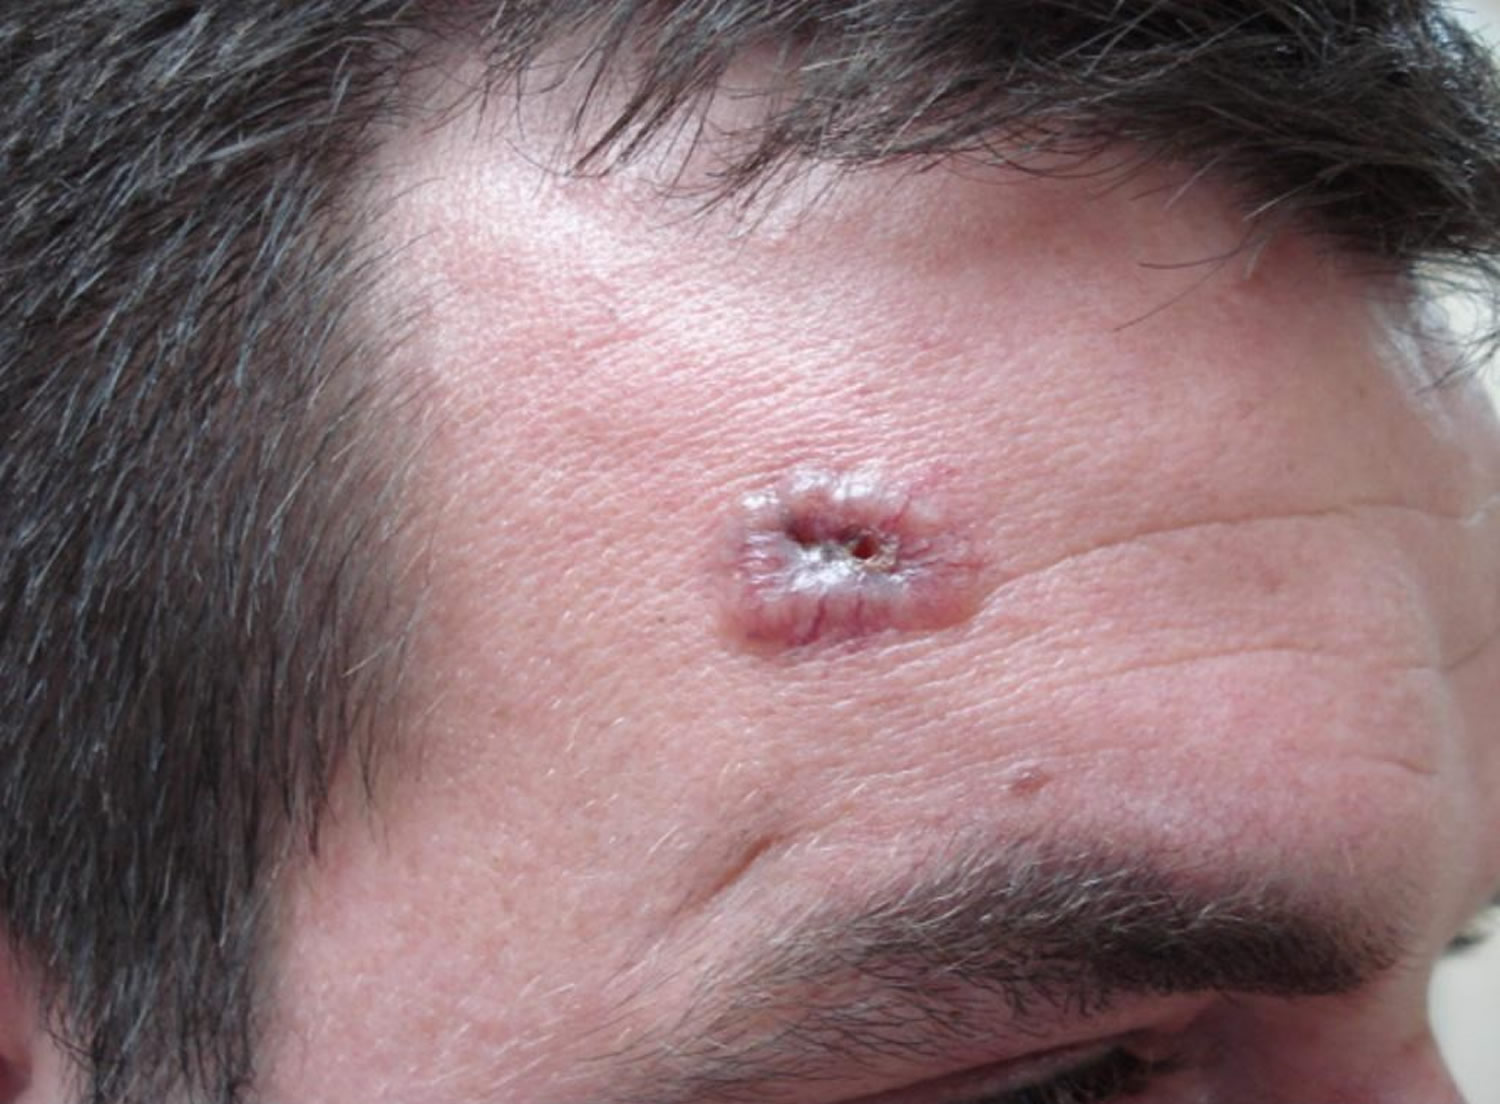 Basal cell carcinoma on face